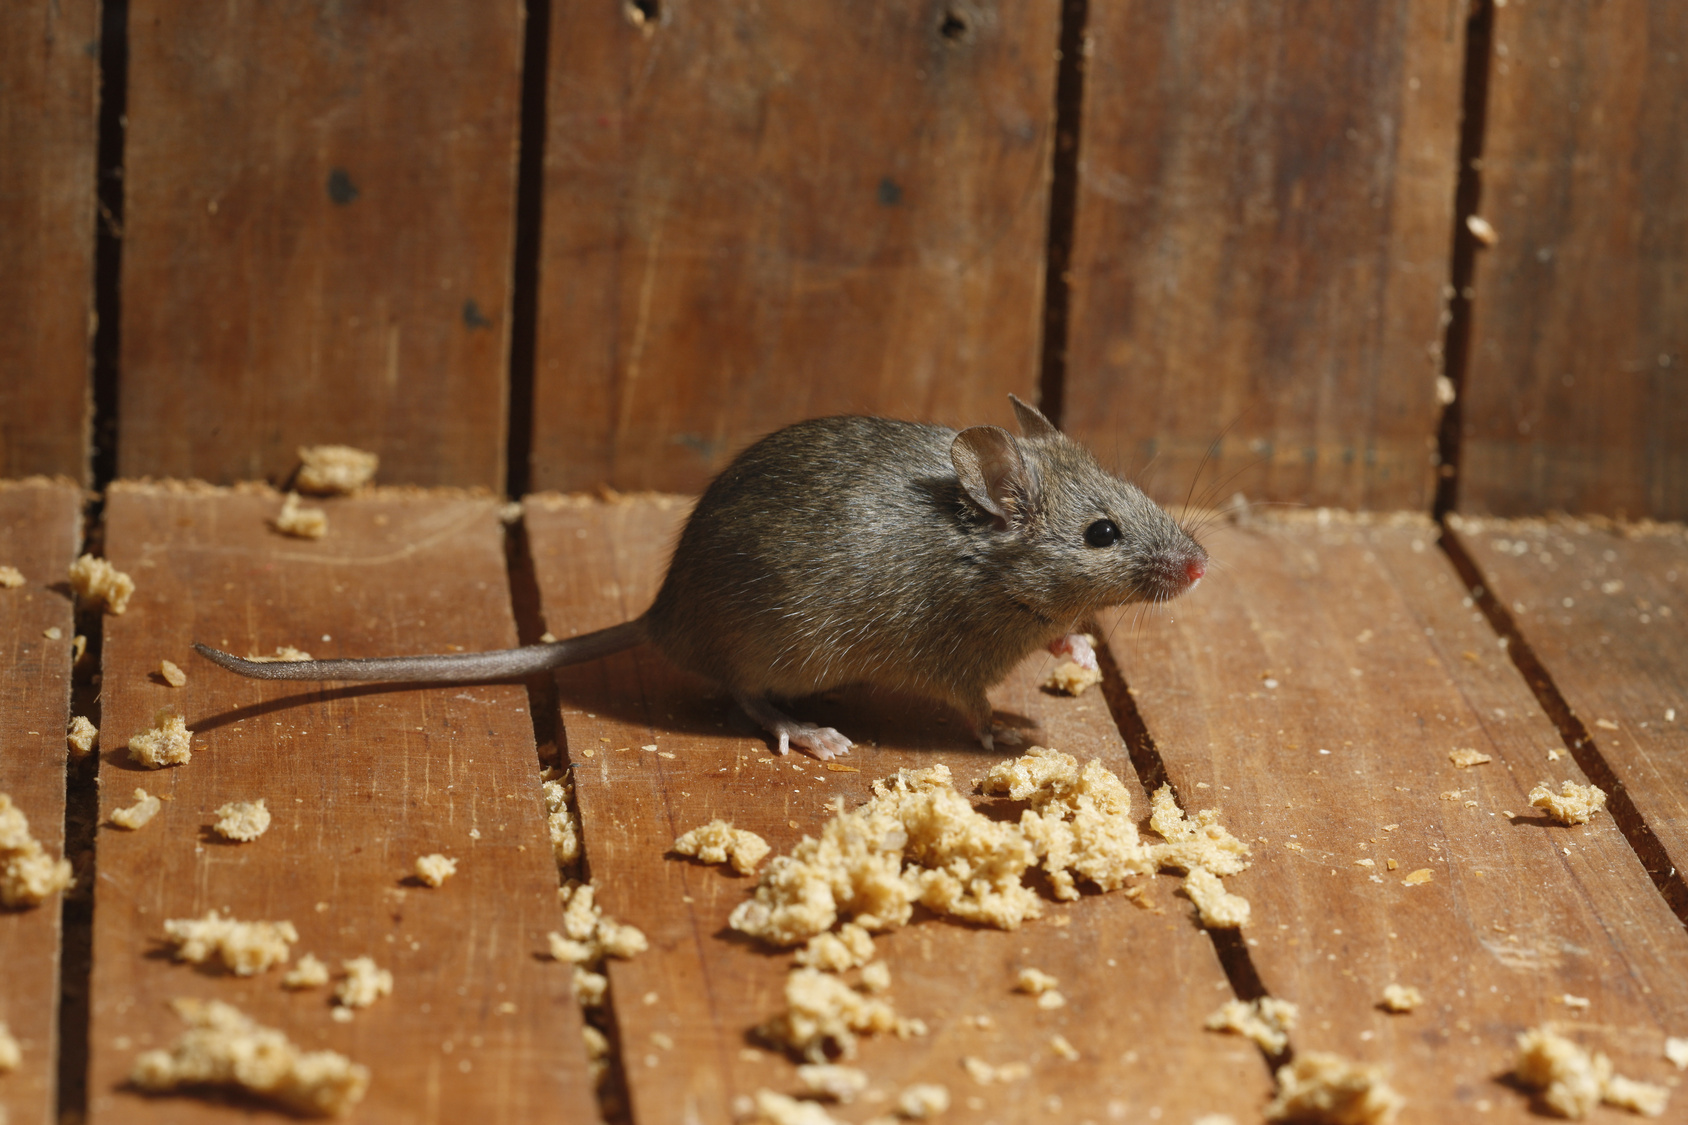 Admirable Walls Reddit Mice Walls But No Droppings Mice Pest Control Mice Pest Control Mouse Removal Mice houzz-03 Mice In Walls